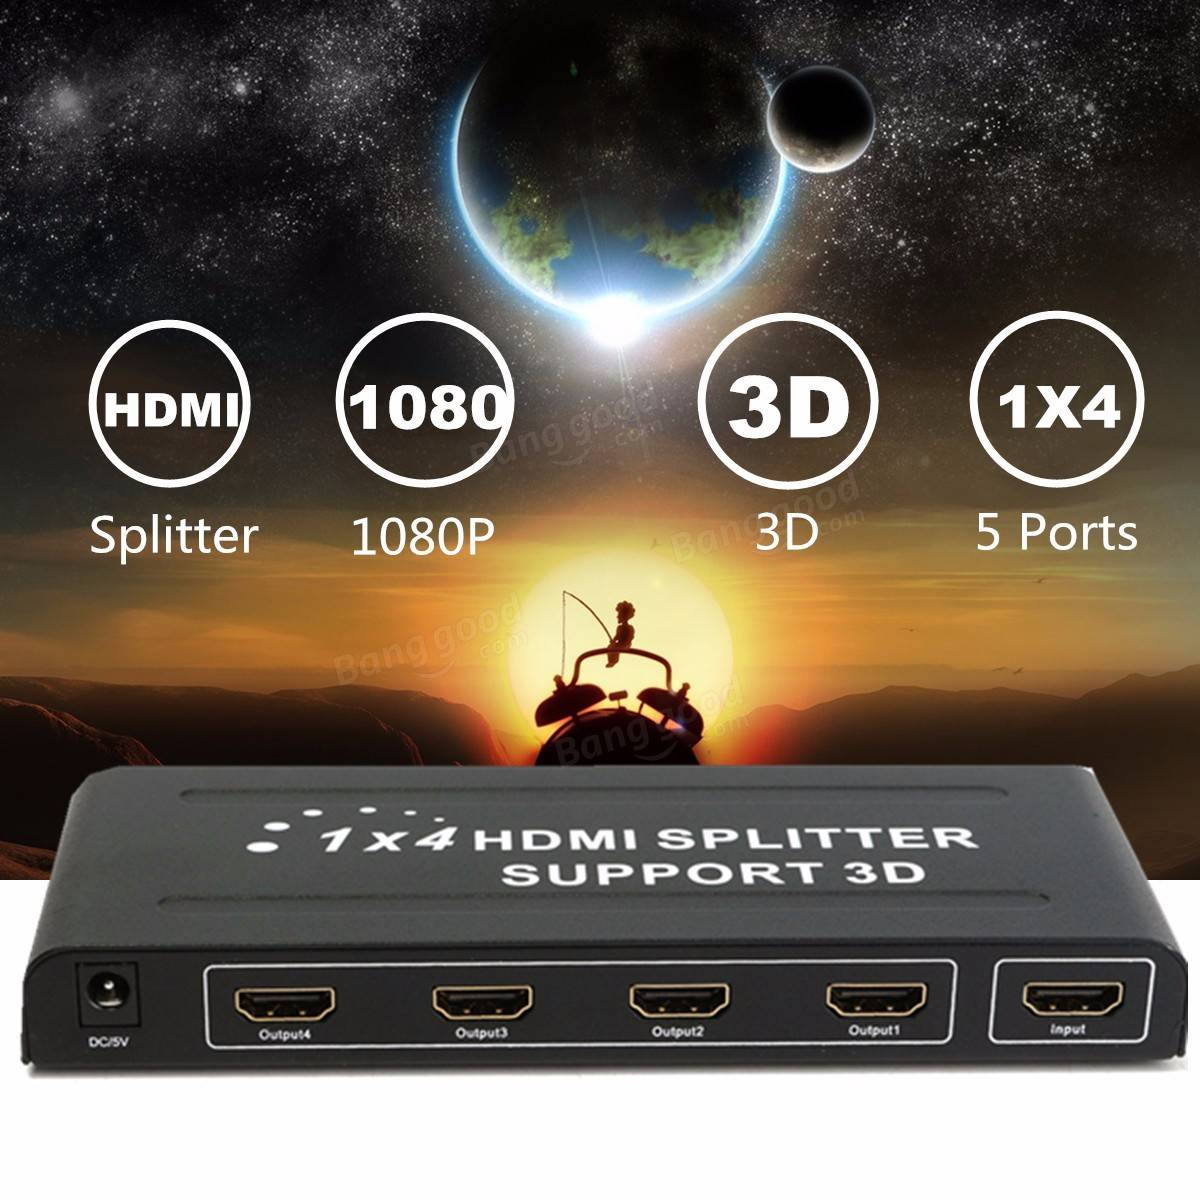 1080p 4 Way Hd Hub 1x4 Port Hdmi 3d Splitter Amplifier Switcher Box Switch For Hdtv Pc